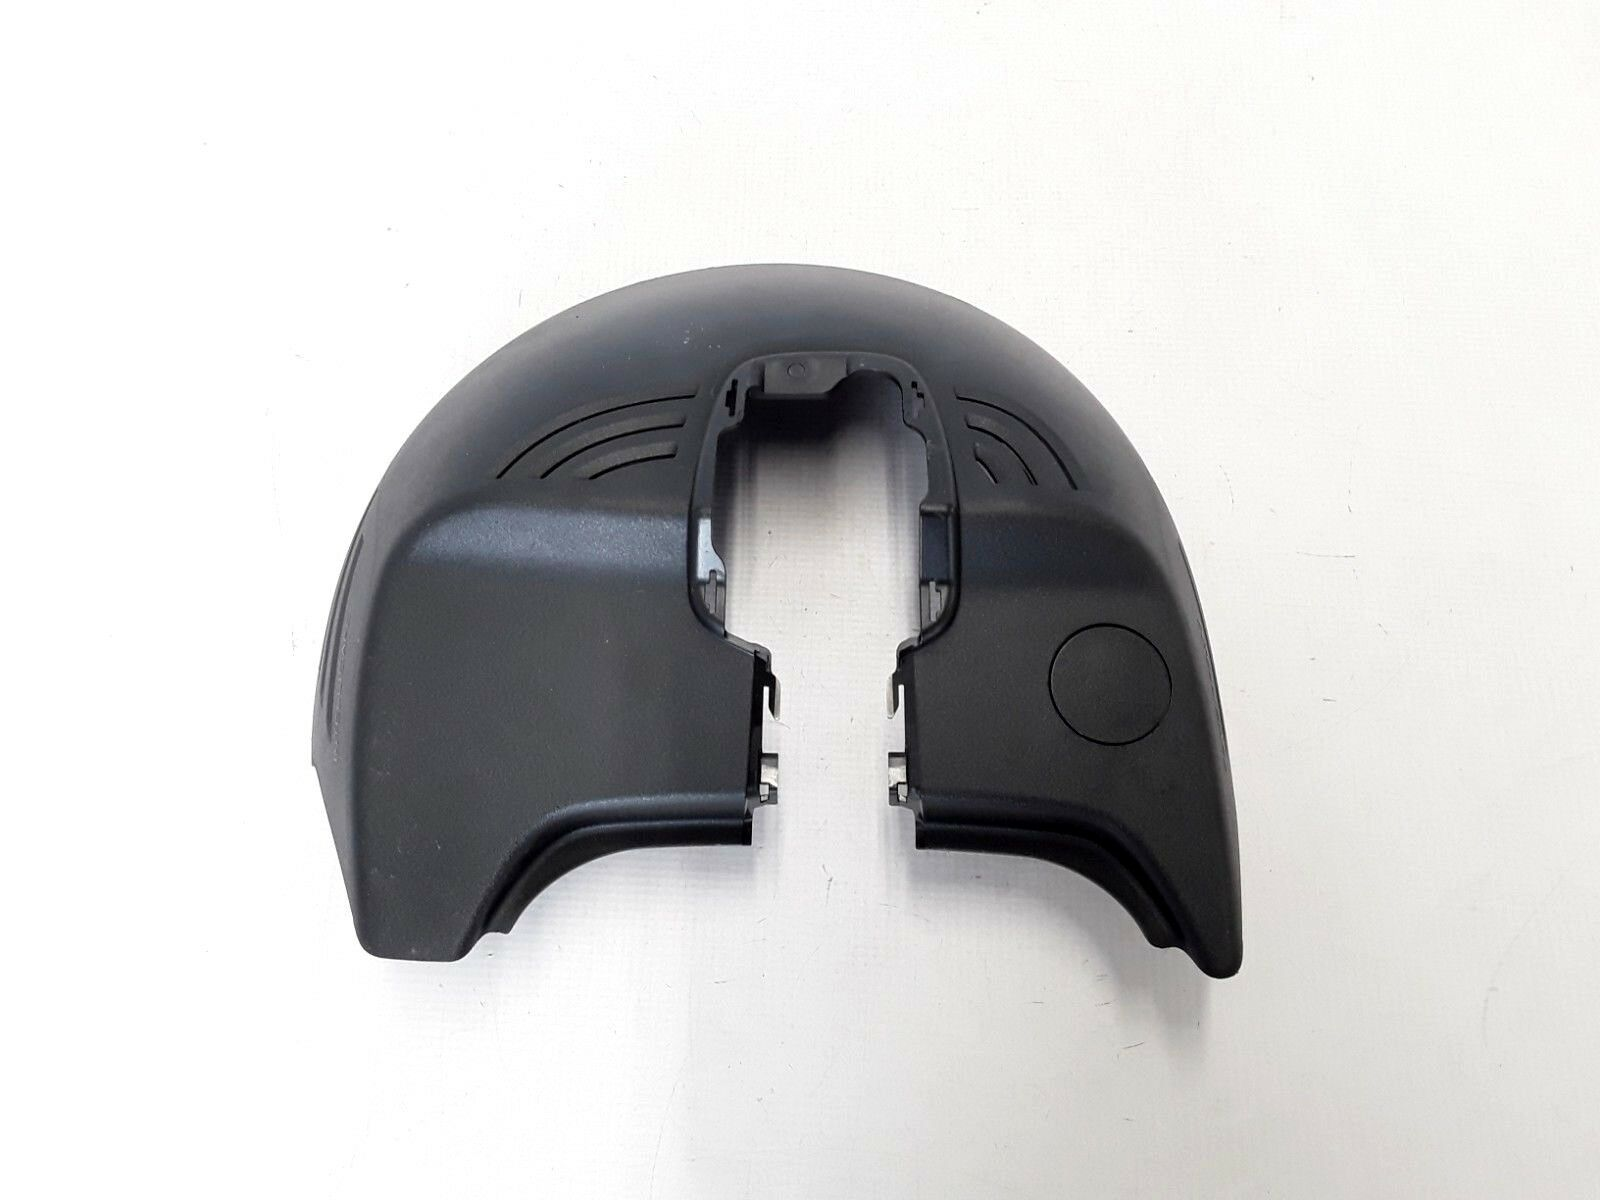 2017 VOLVO S90 INTERNAL REARVIEW MIRROR COVER 31402936